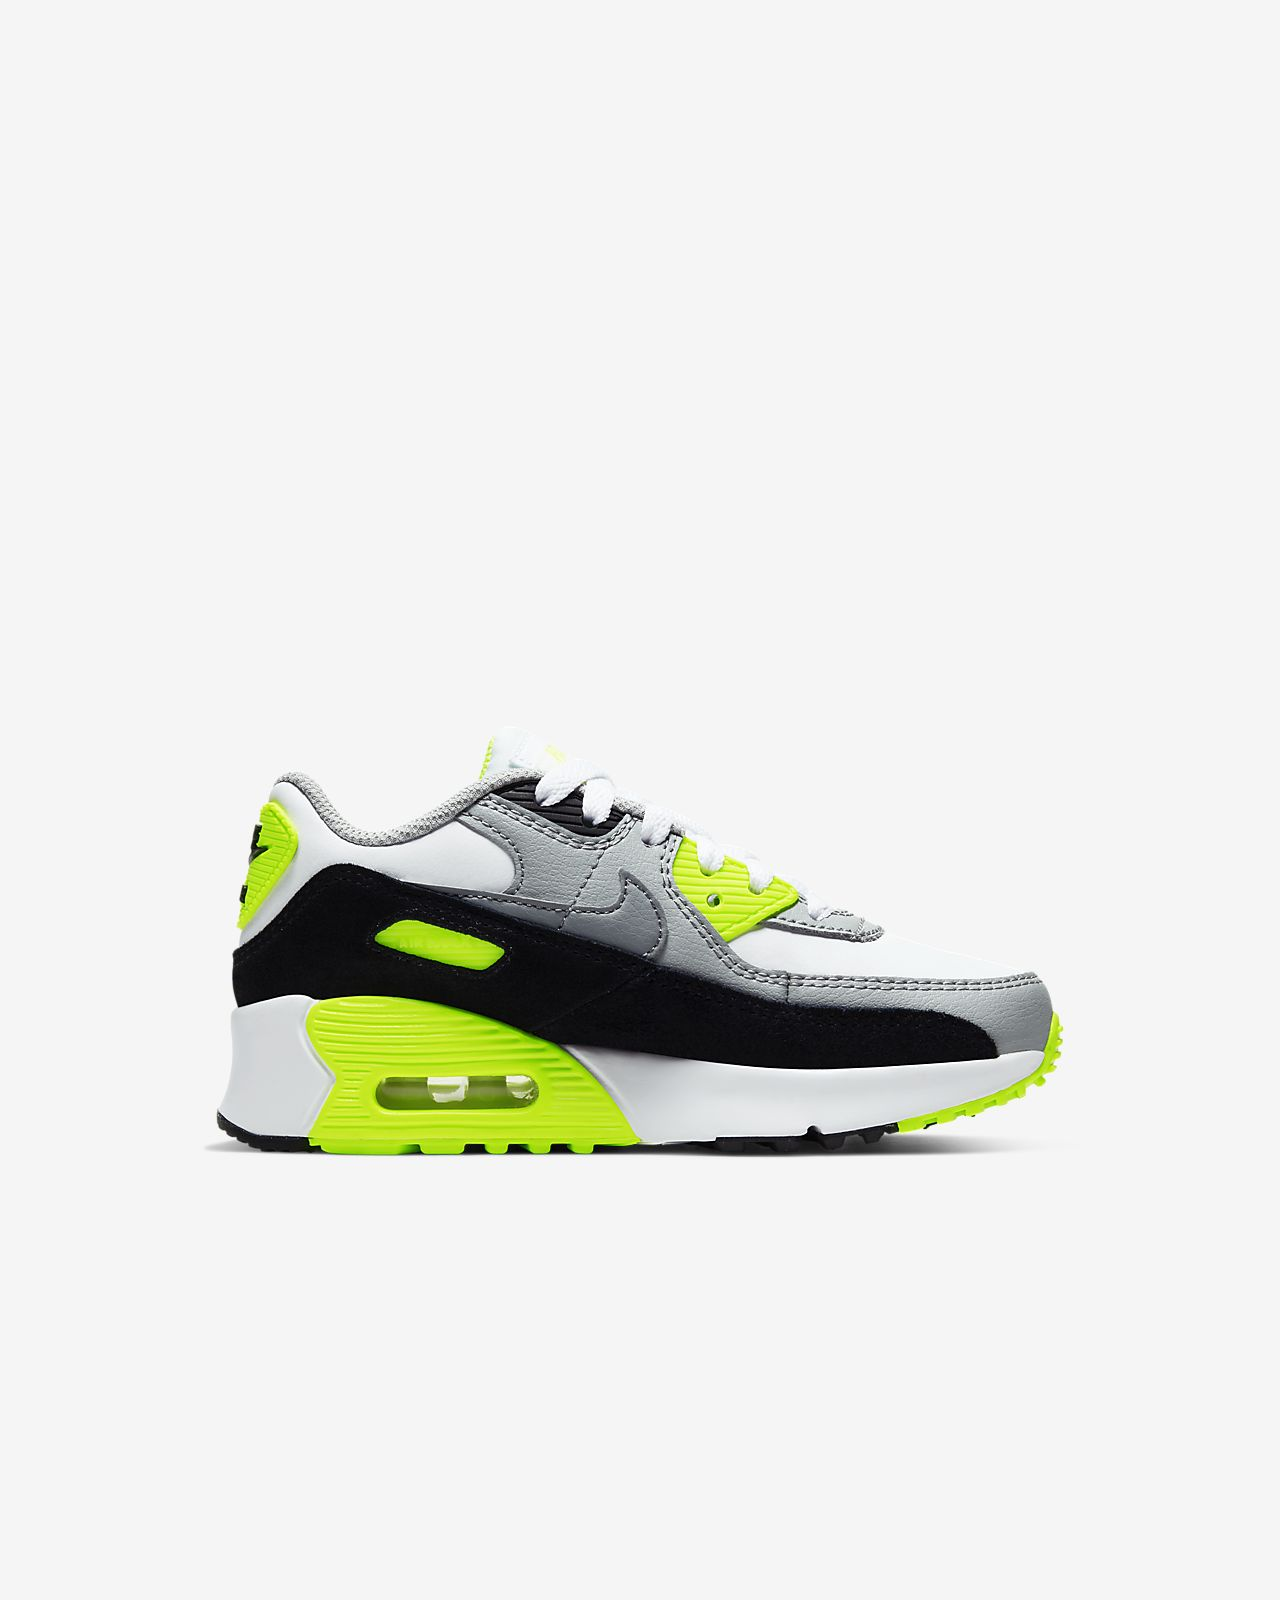 Nike Air Max 90 WMNS WhiteLight Grey For Sale